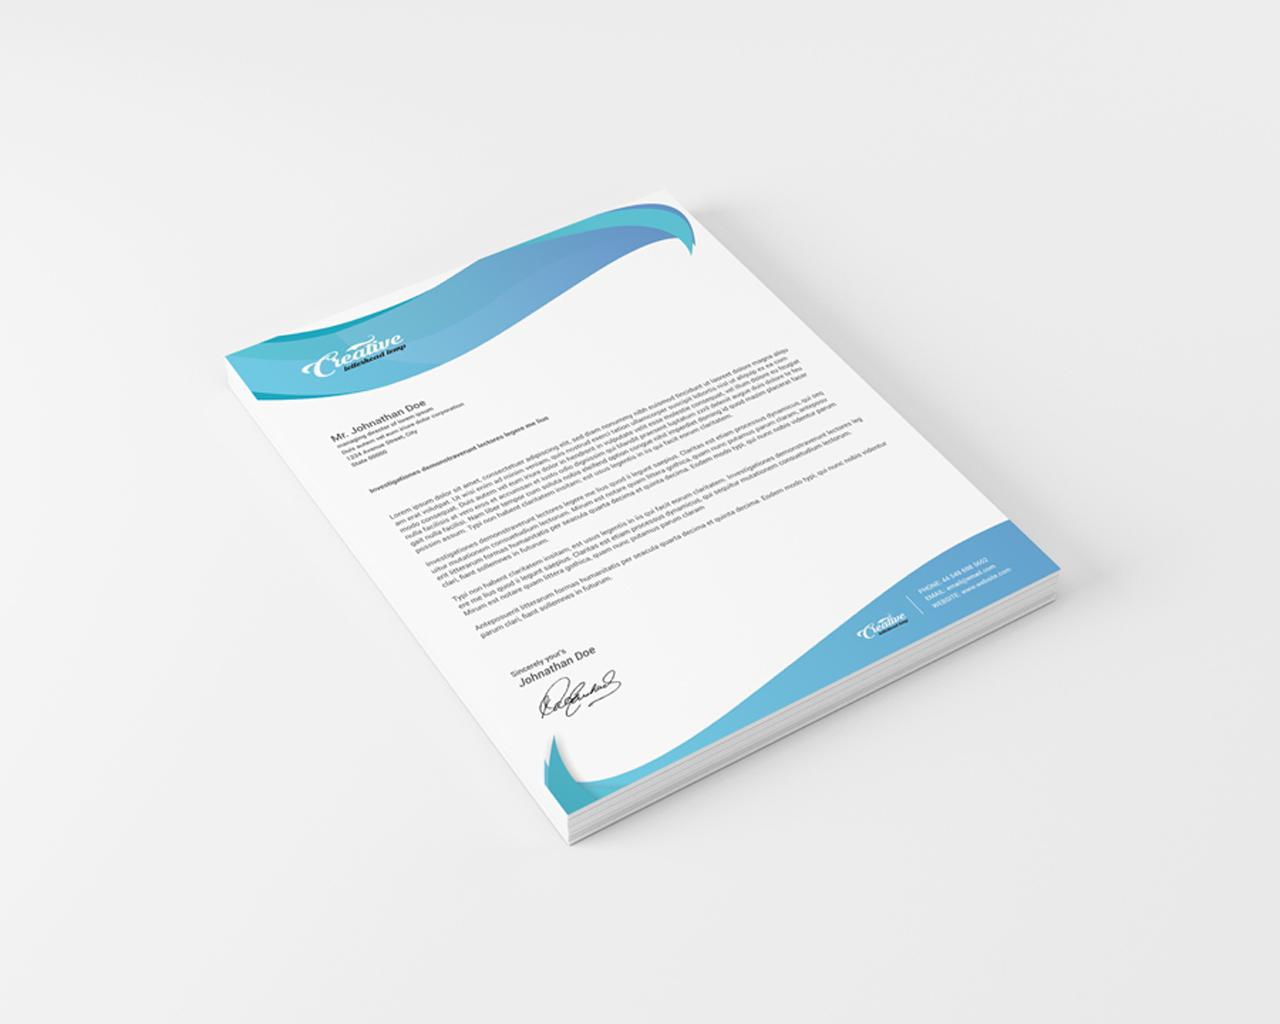 Professional Letterhead Design Service by CreativeShop7 - 95368